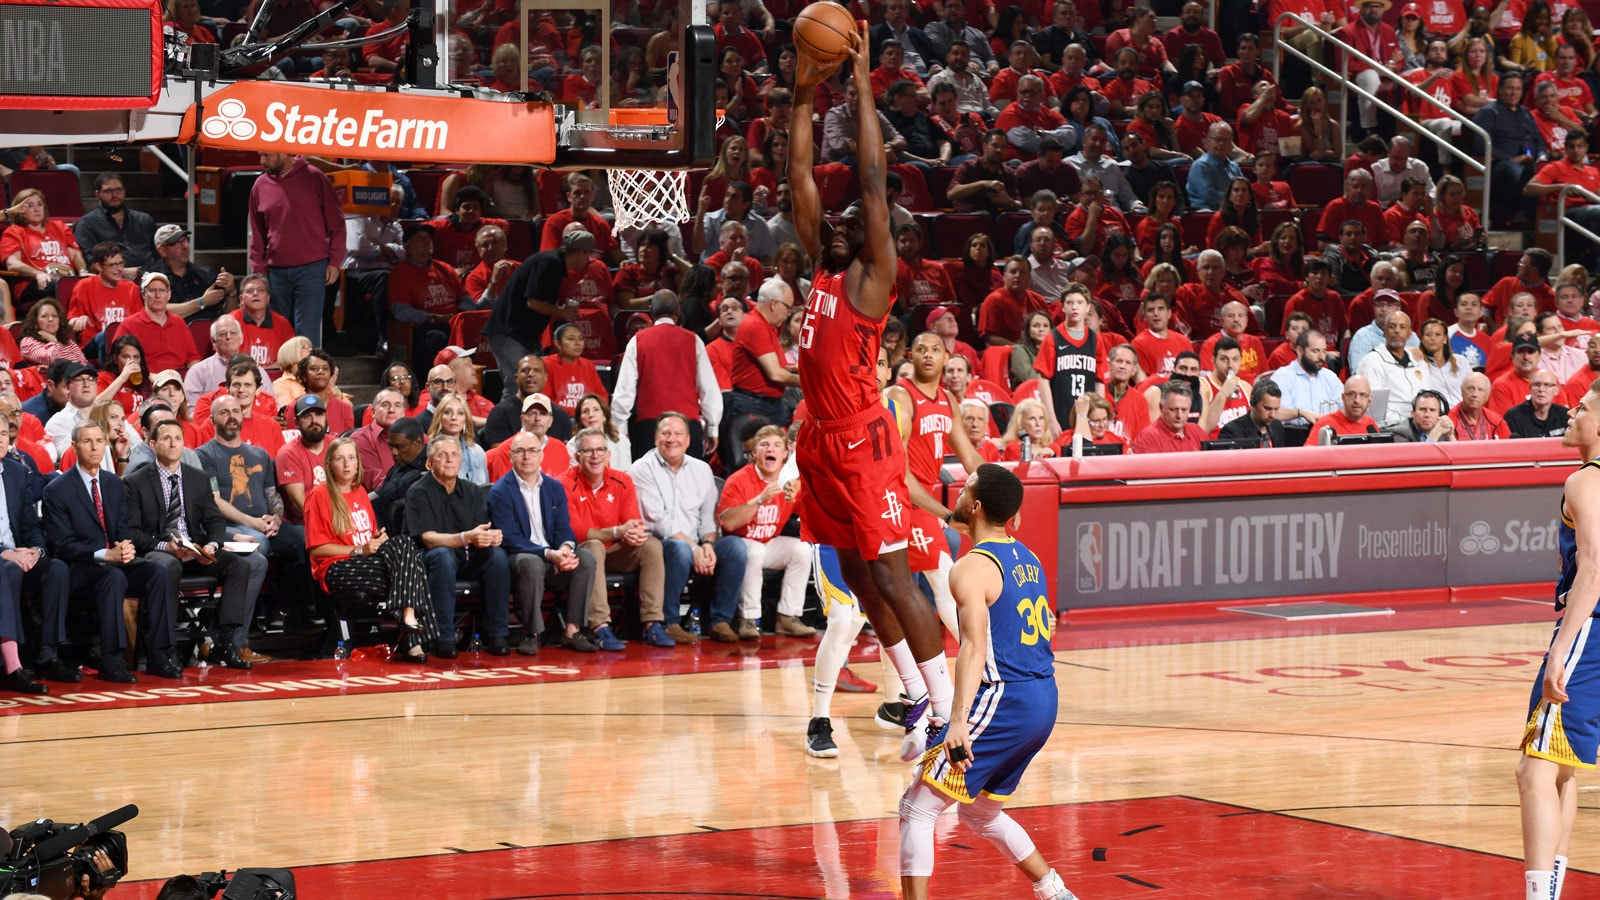 Clint Capela #15 of the Houston Rockets dunks the ball against the Golden State Warriors during Game Six of the Western Conference Semifinals of the 2019 NBA Playoffs on May 10, 2019 at the Toyota Center in Houston, Texas.